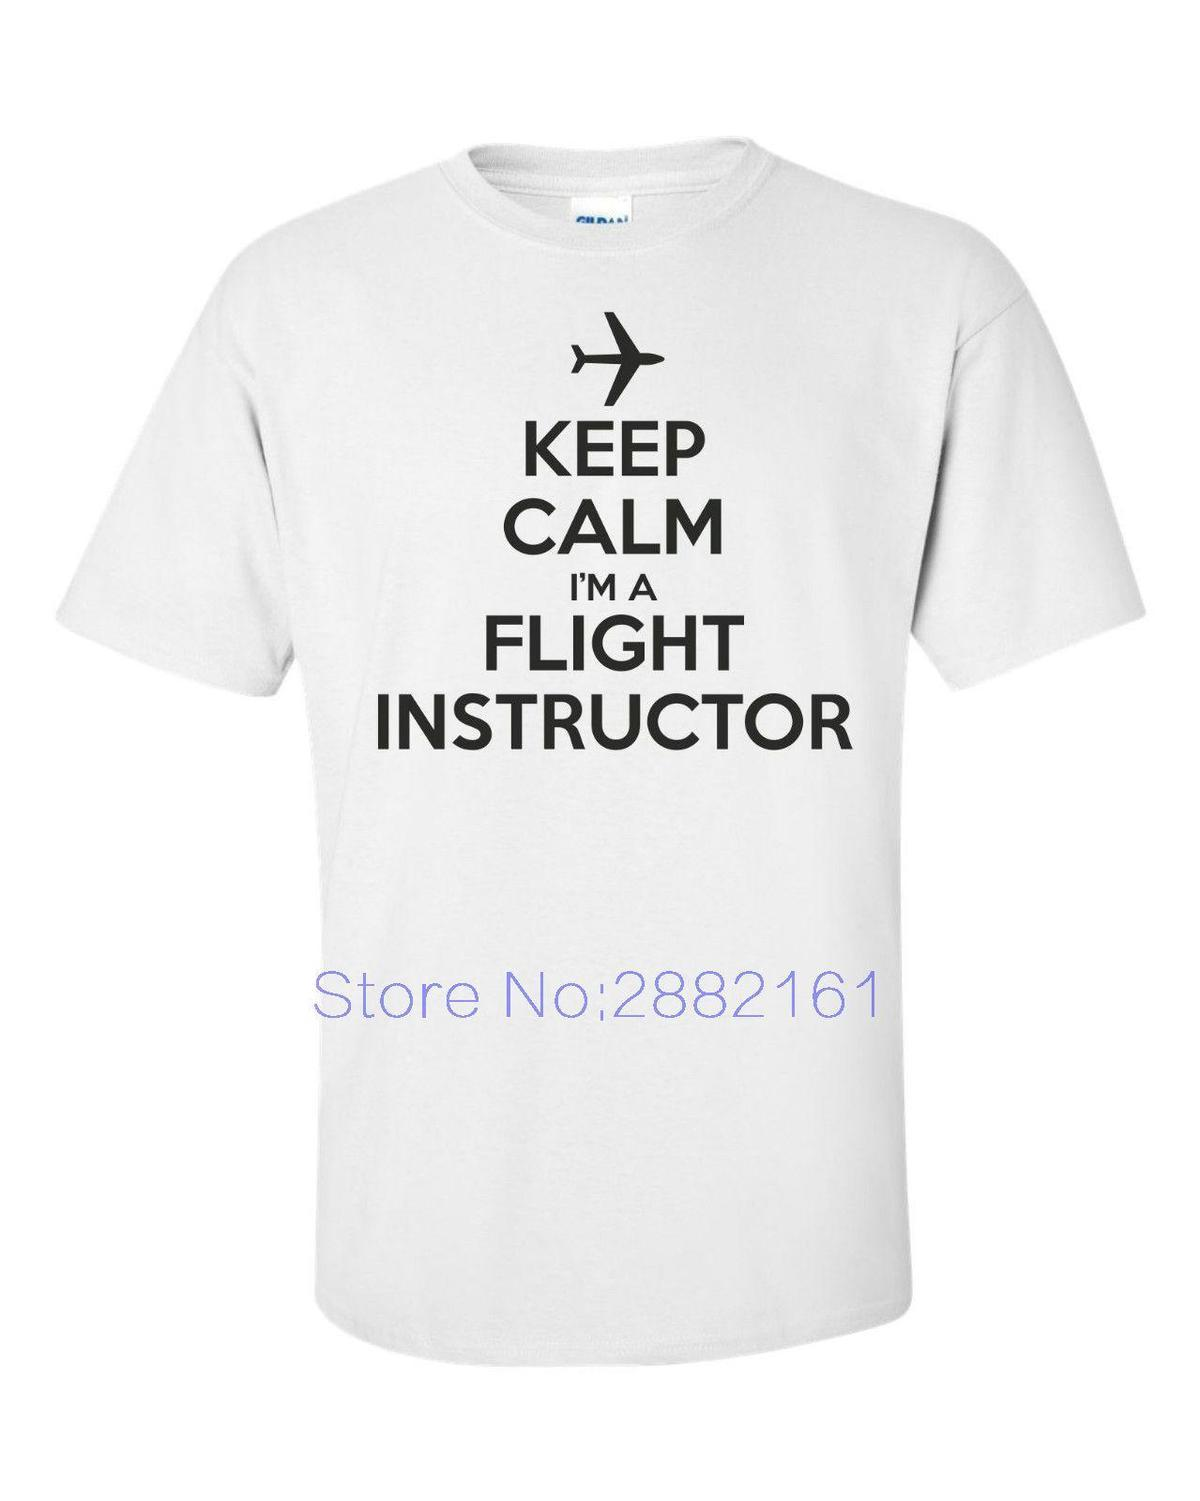 74ab4f3715 KEEP CALM FLIGHT INSTRUCTOR Funny Mens T Shirt AVIATION AIRPLANE PLANE  PILOT Short Sleeves Cotton Shirts Design Online T Shirts From Amesion98, ...